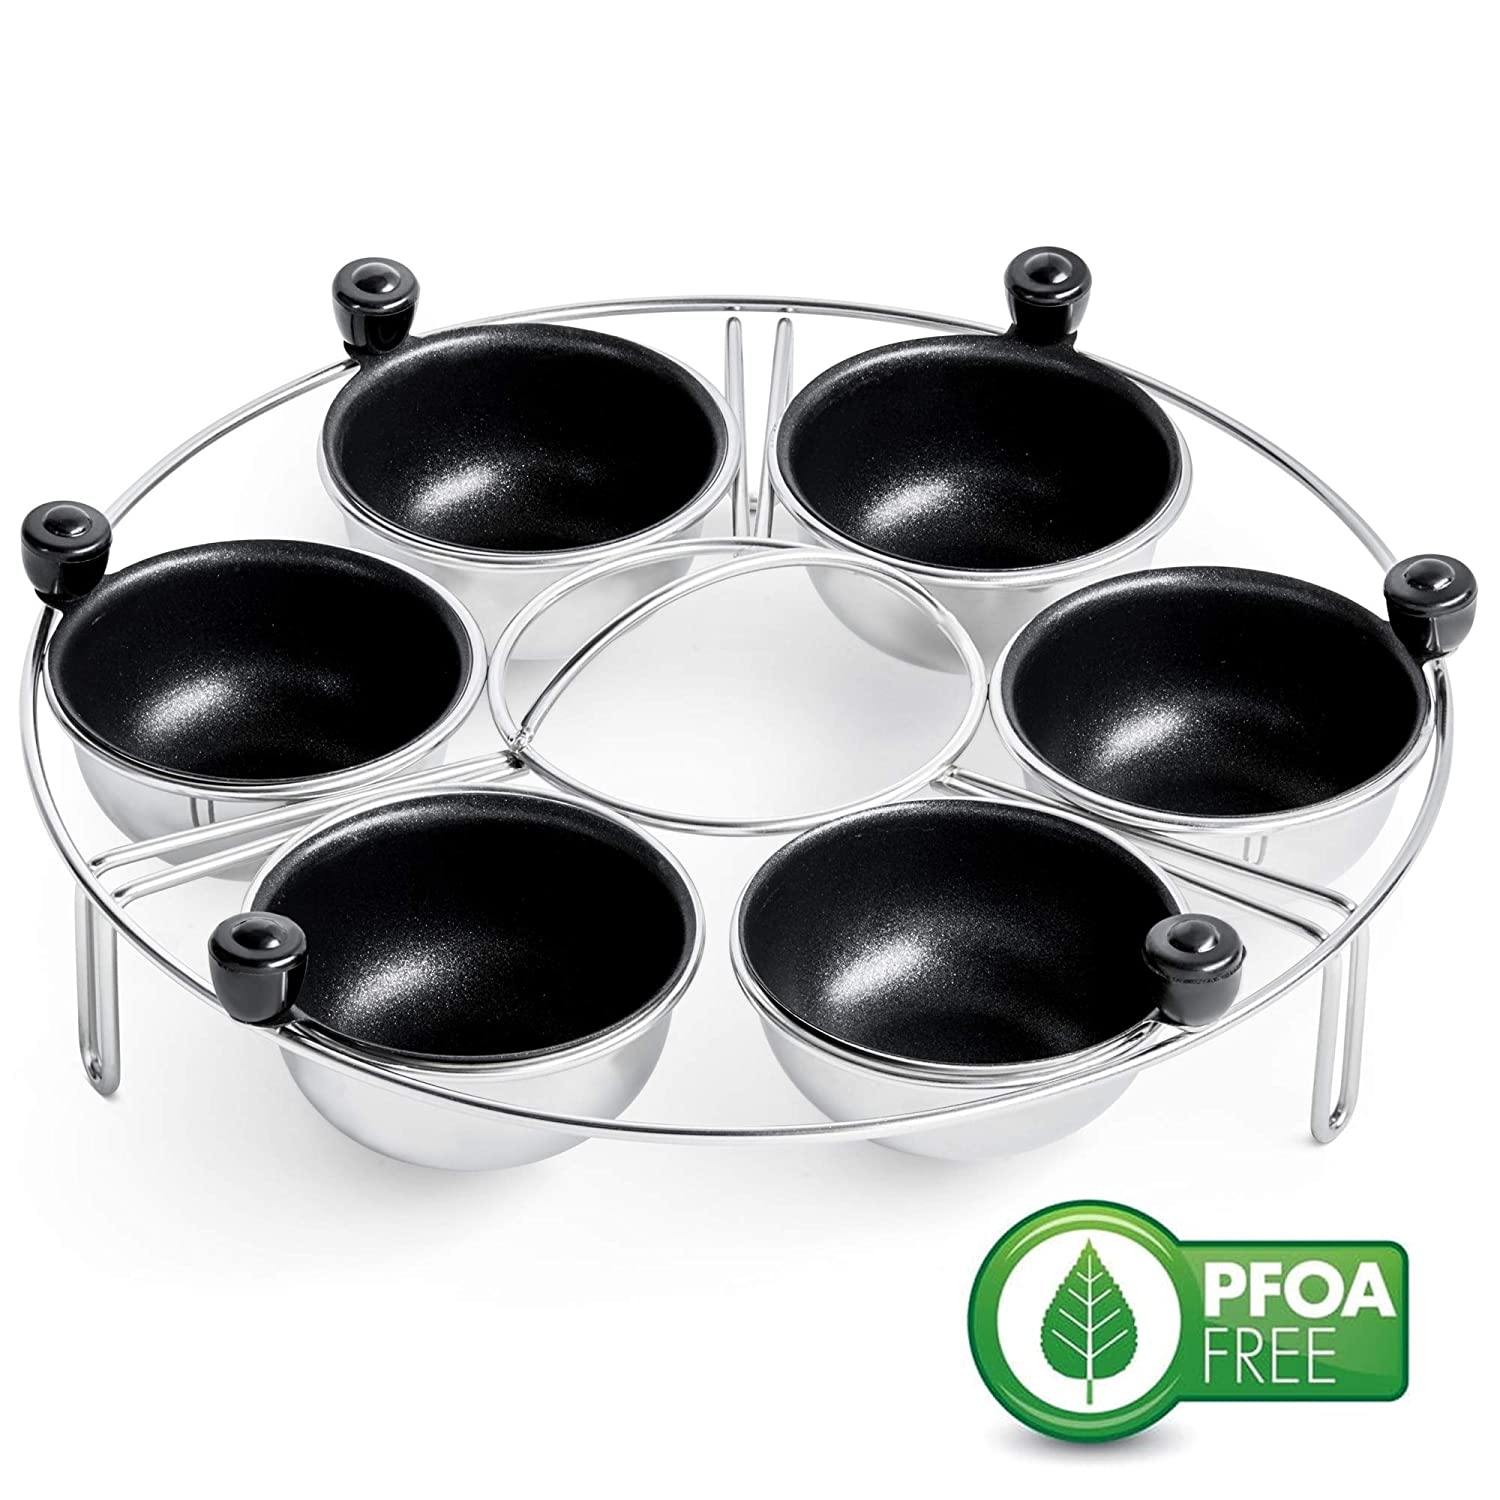 Eggssentials Egg Poacher | Stainless Steel Egg Rack | 6 Poached Egg Maker Cups PFOA Free Nonstick | 9 inch Diameter Egg Steamer Rack Fits Many sized Pans Skillets …